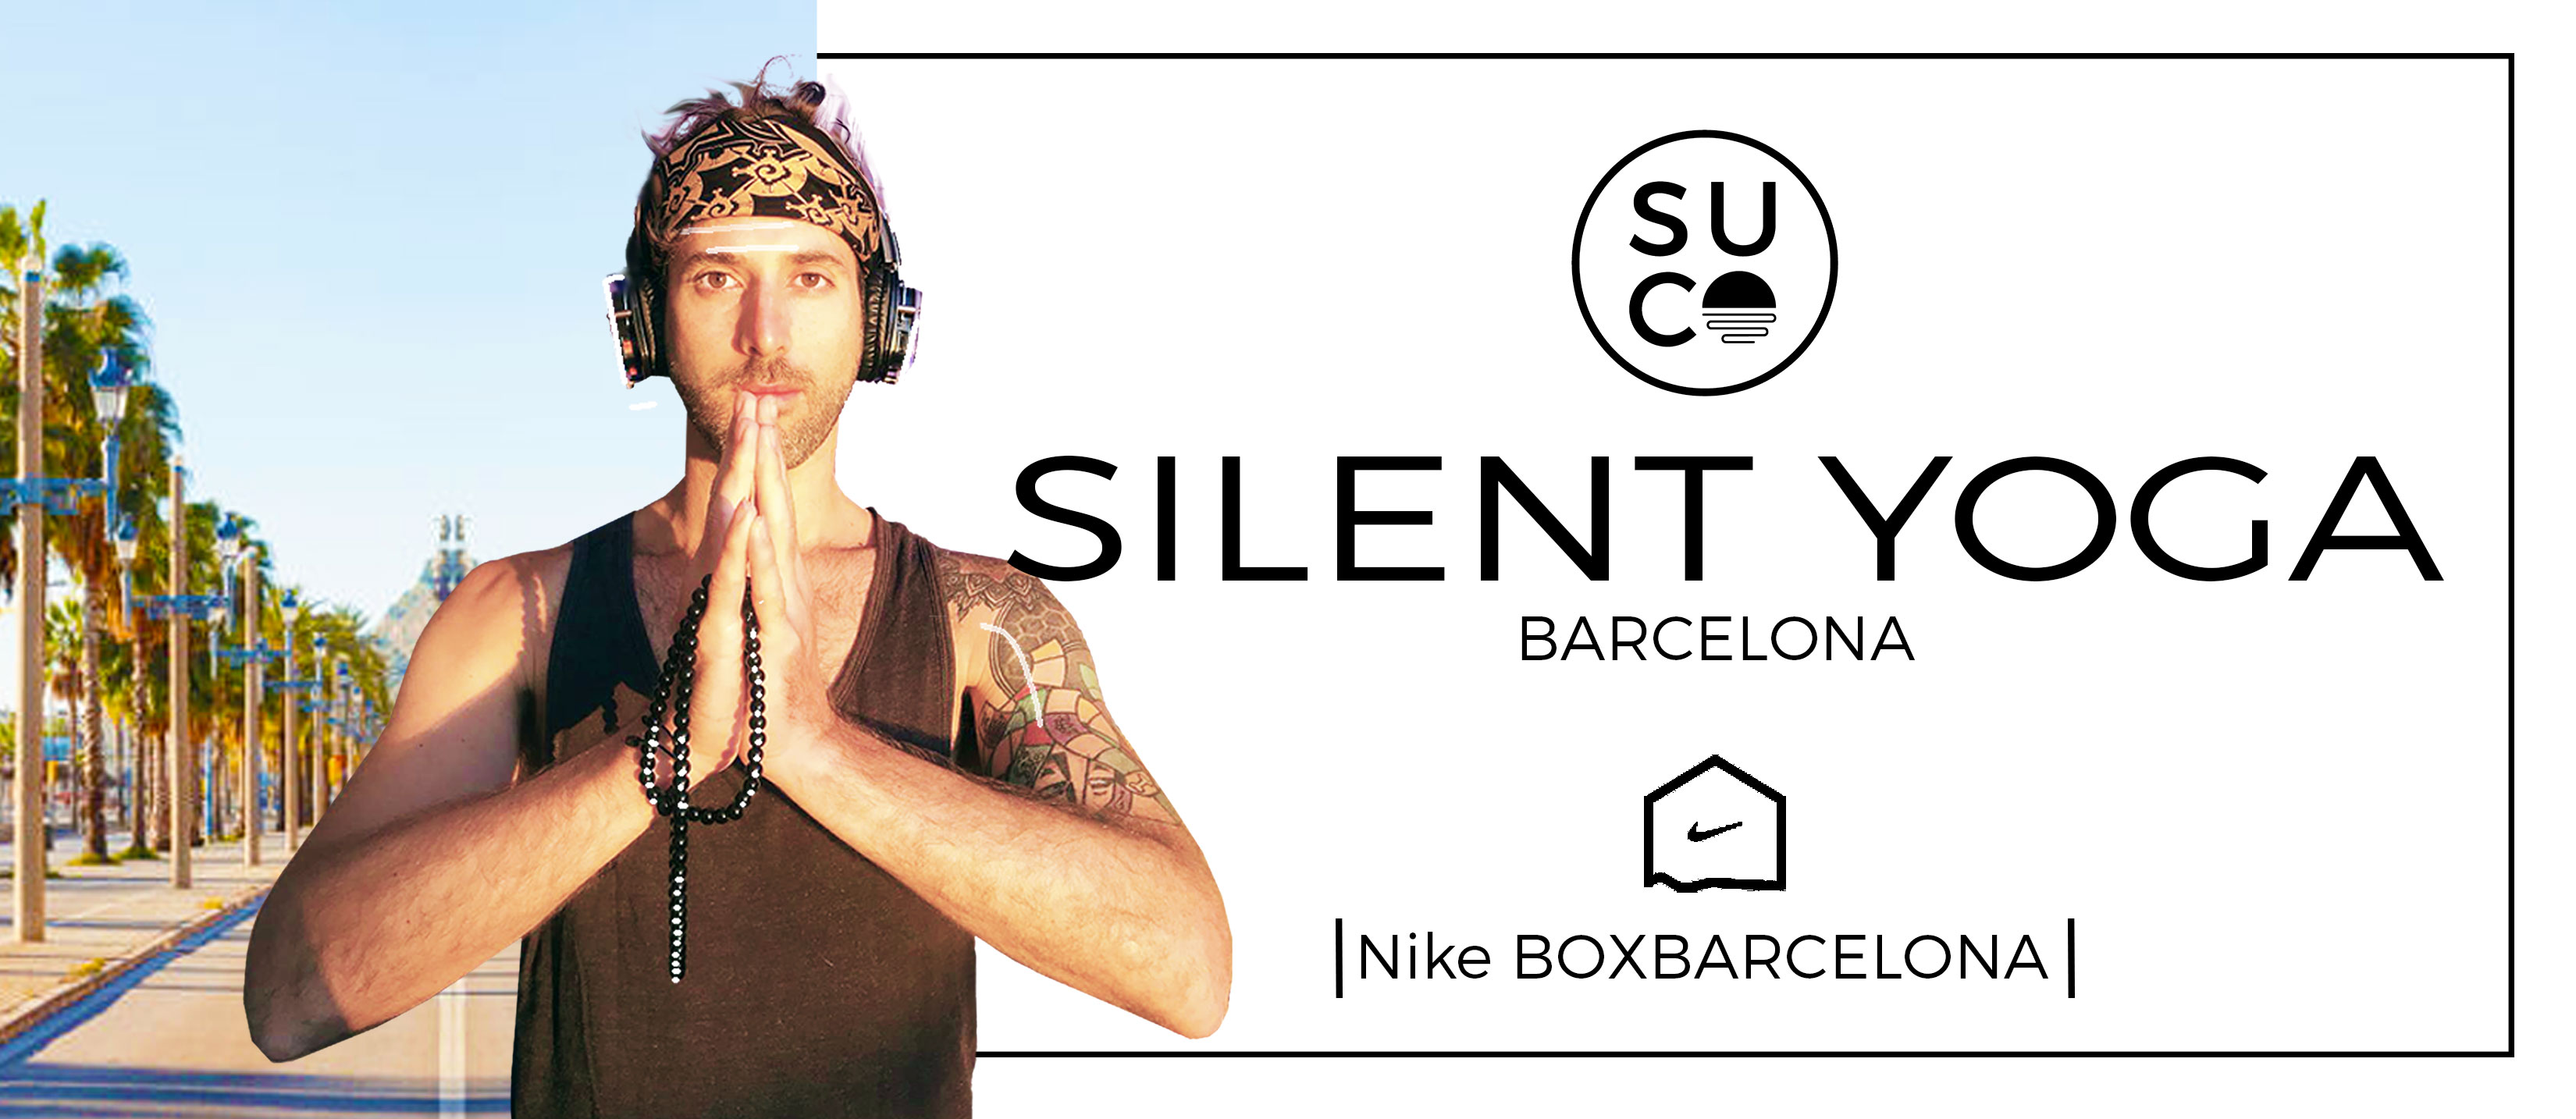 SILENT YOGA WITH HEADSET.(11:00 -12:30) SUCO SESSIONS